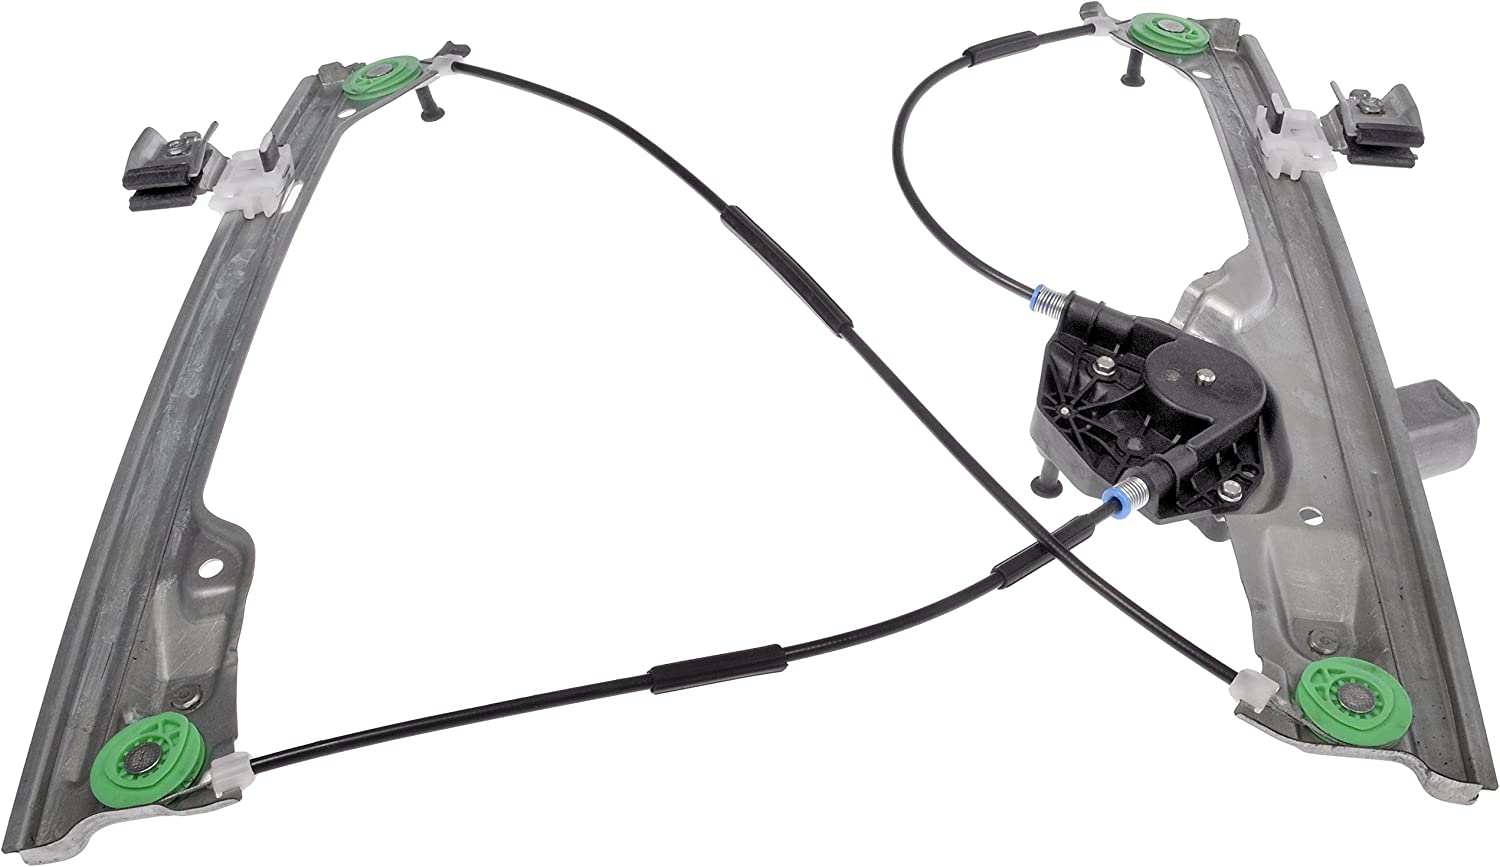 GMC Models Dorman 751-724 Front Driver Side Power Window Motor and Regulator Assembly for Select Cadillac Chevrolet